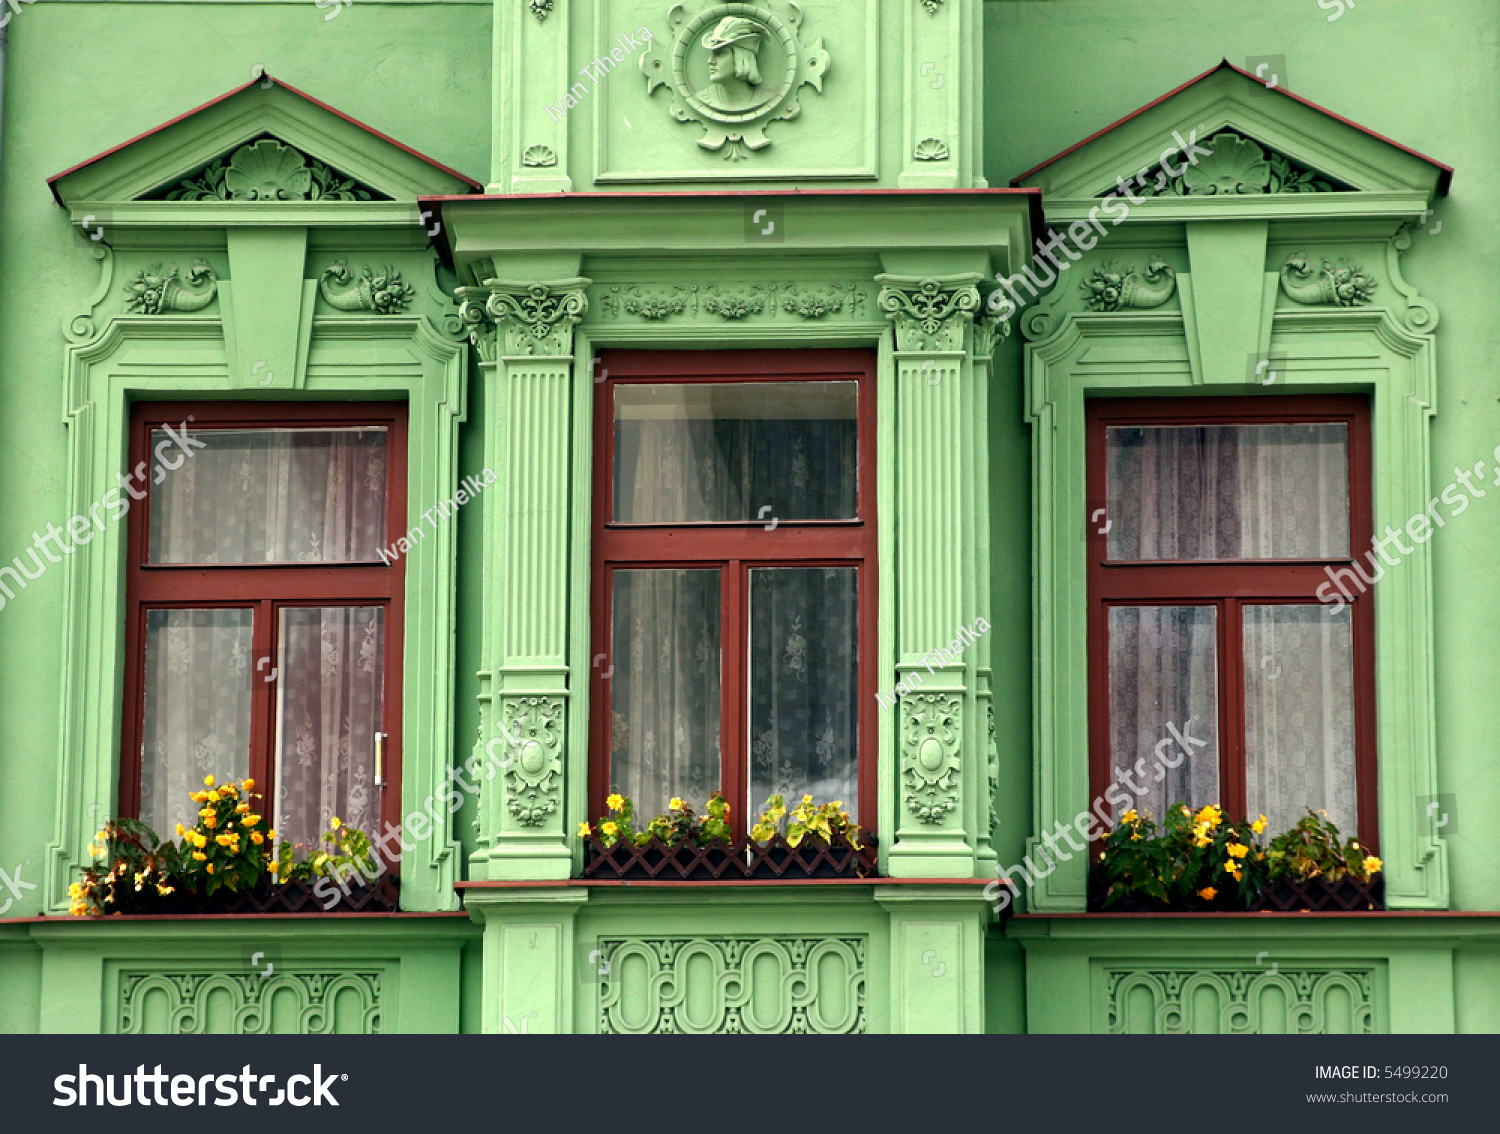 Front Elevation Window : Front elevation in a green with three windows stock photo